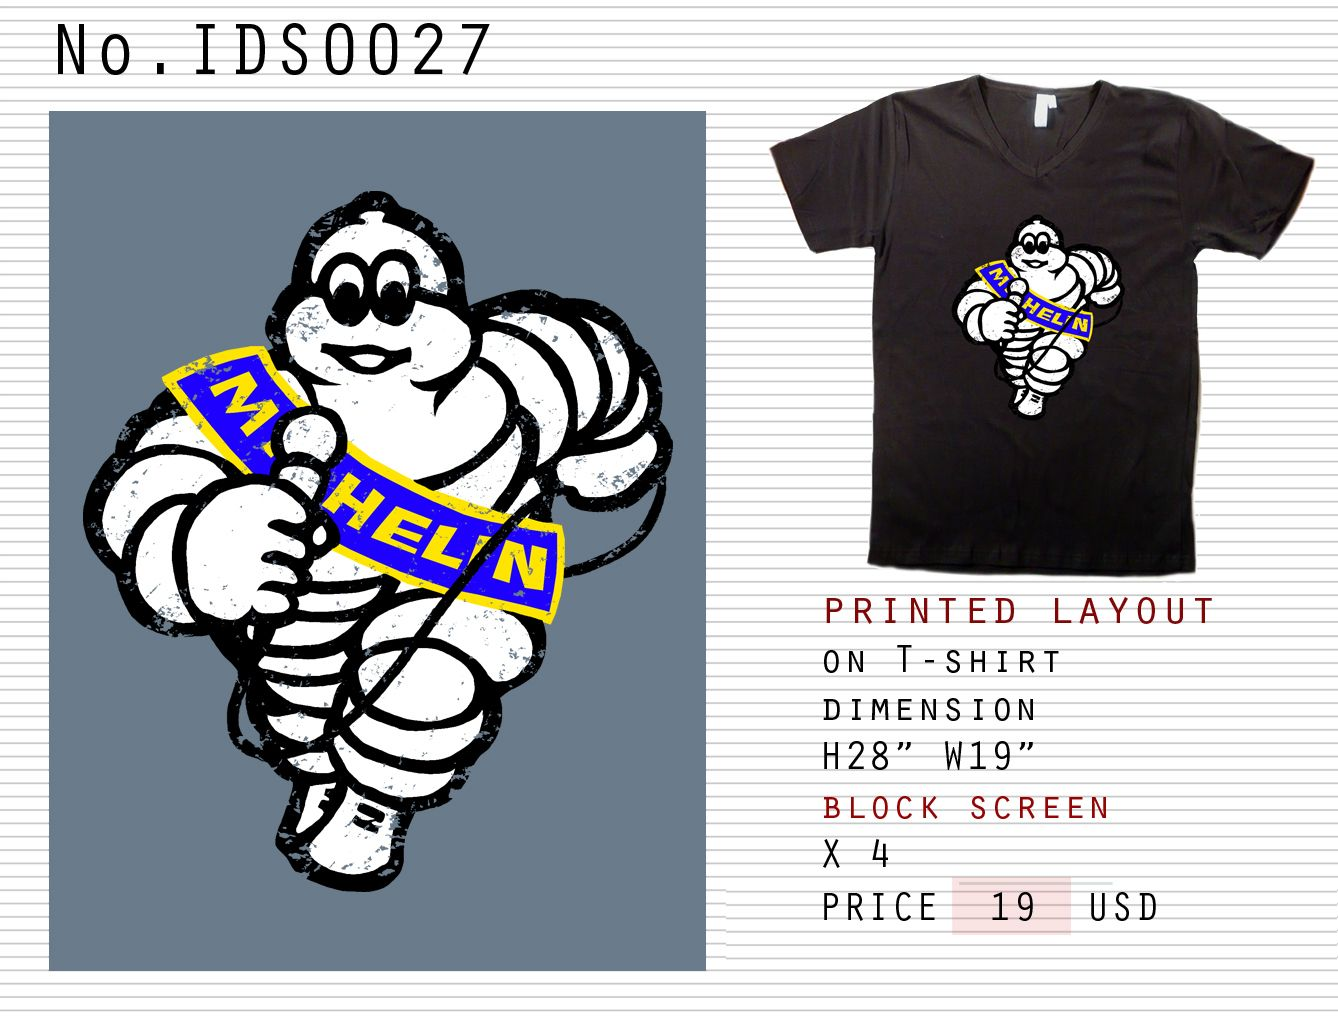 This Is Psdle Layer Are Sepperated Ready To Print On T Shirt With